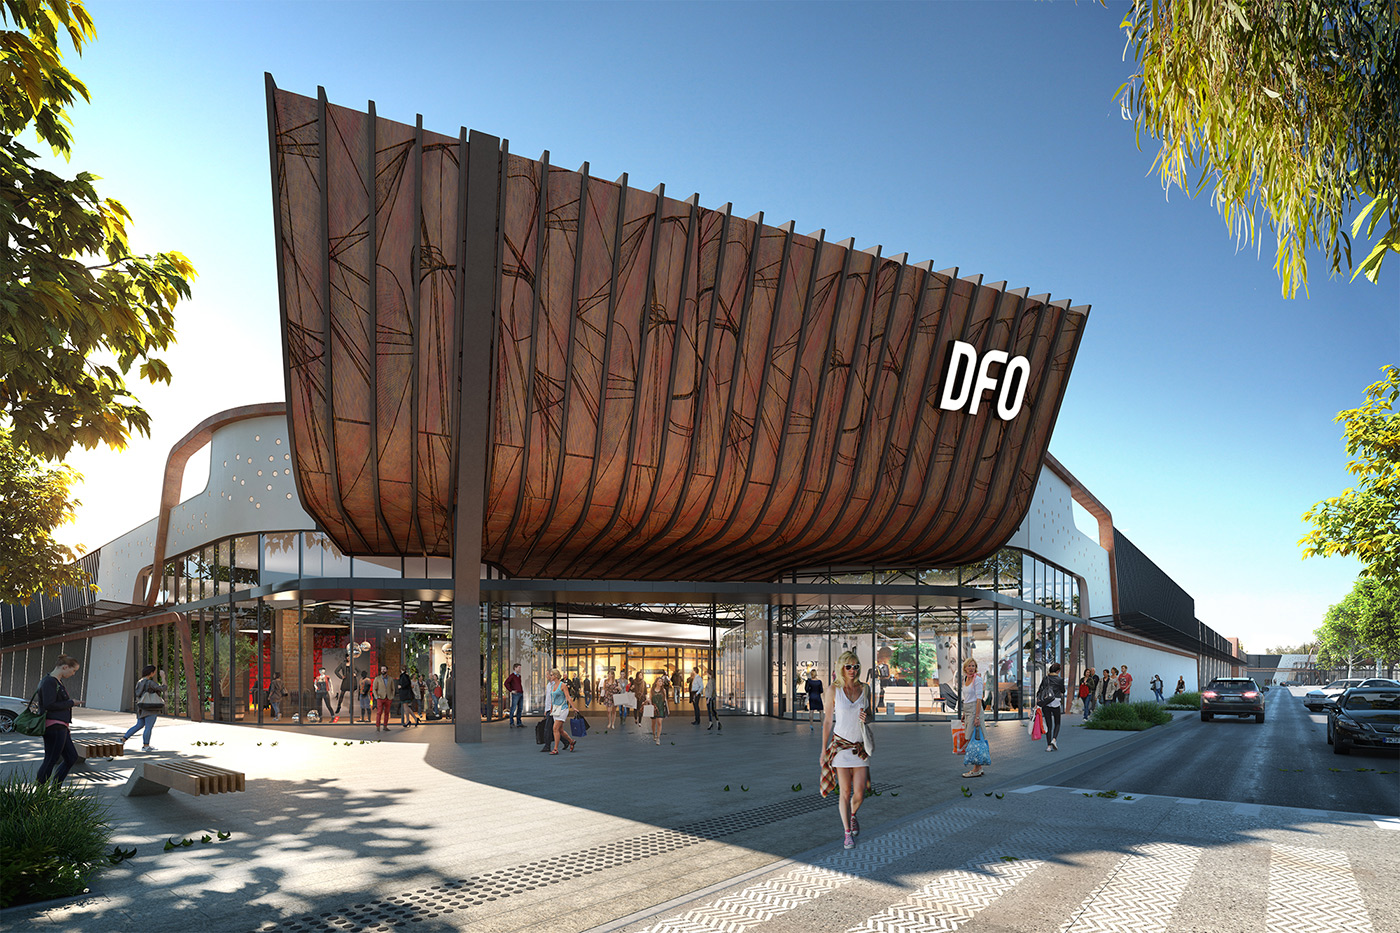 DFO Perth exterior concepts with new logo